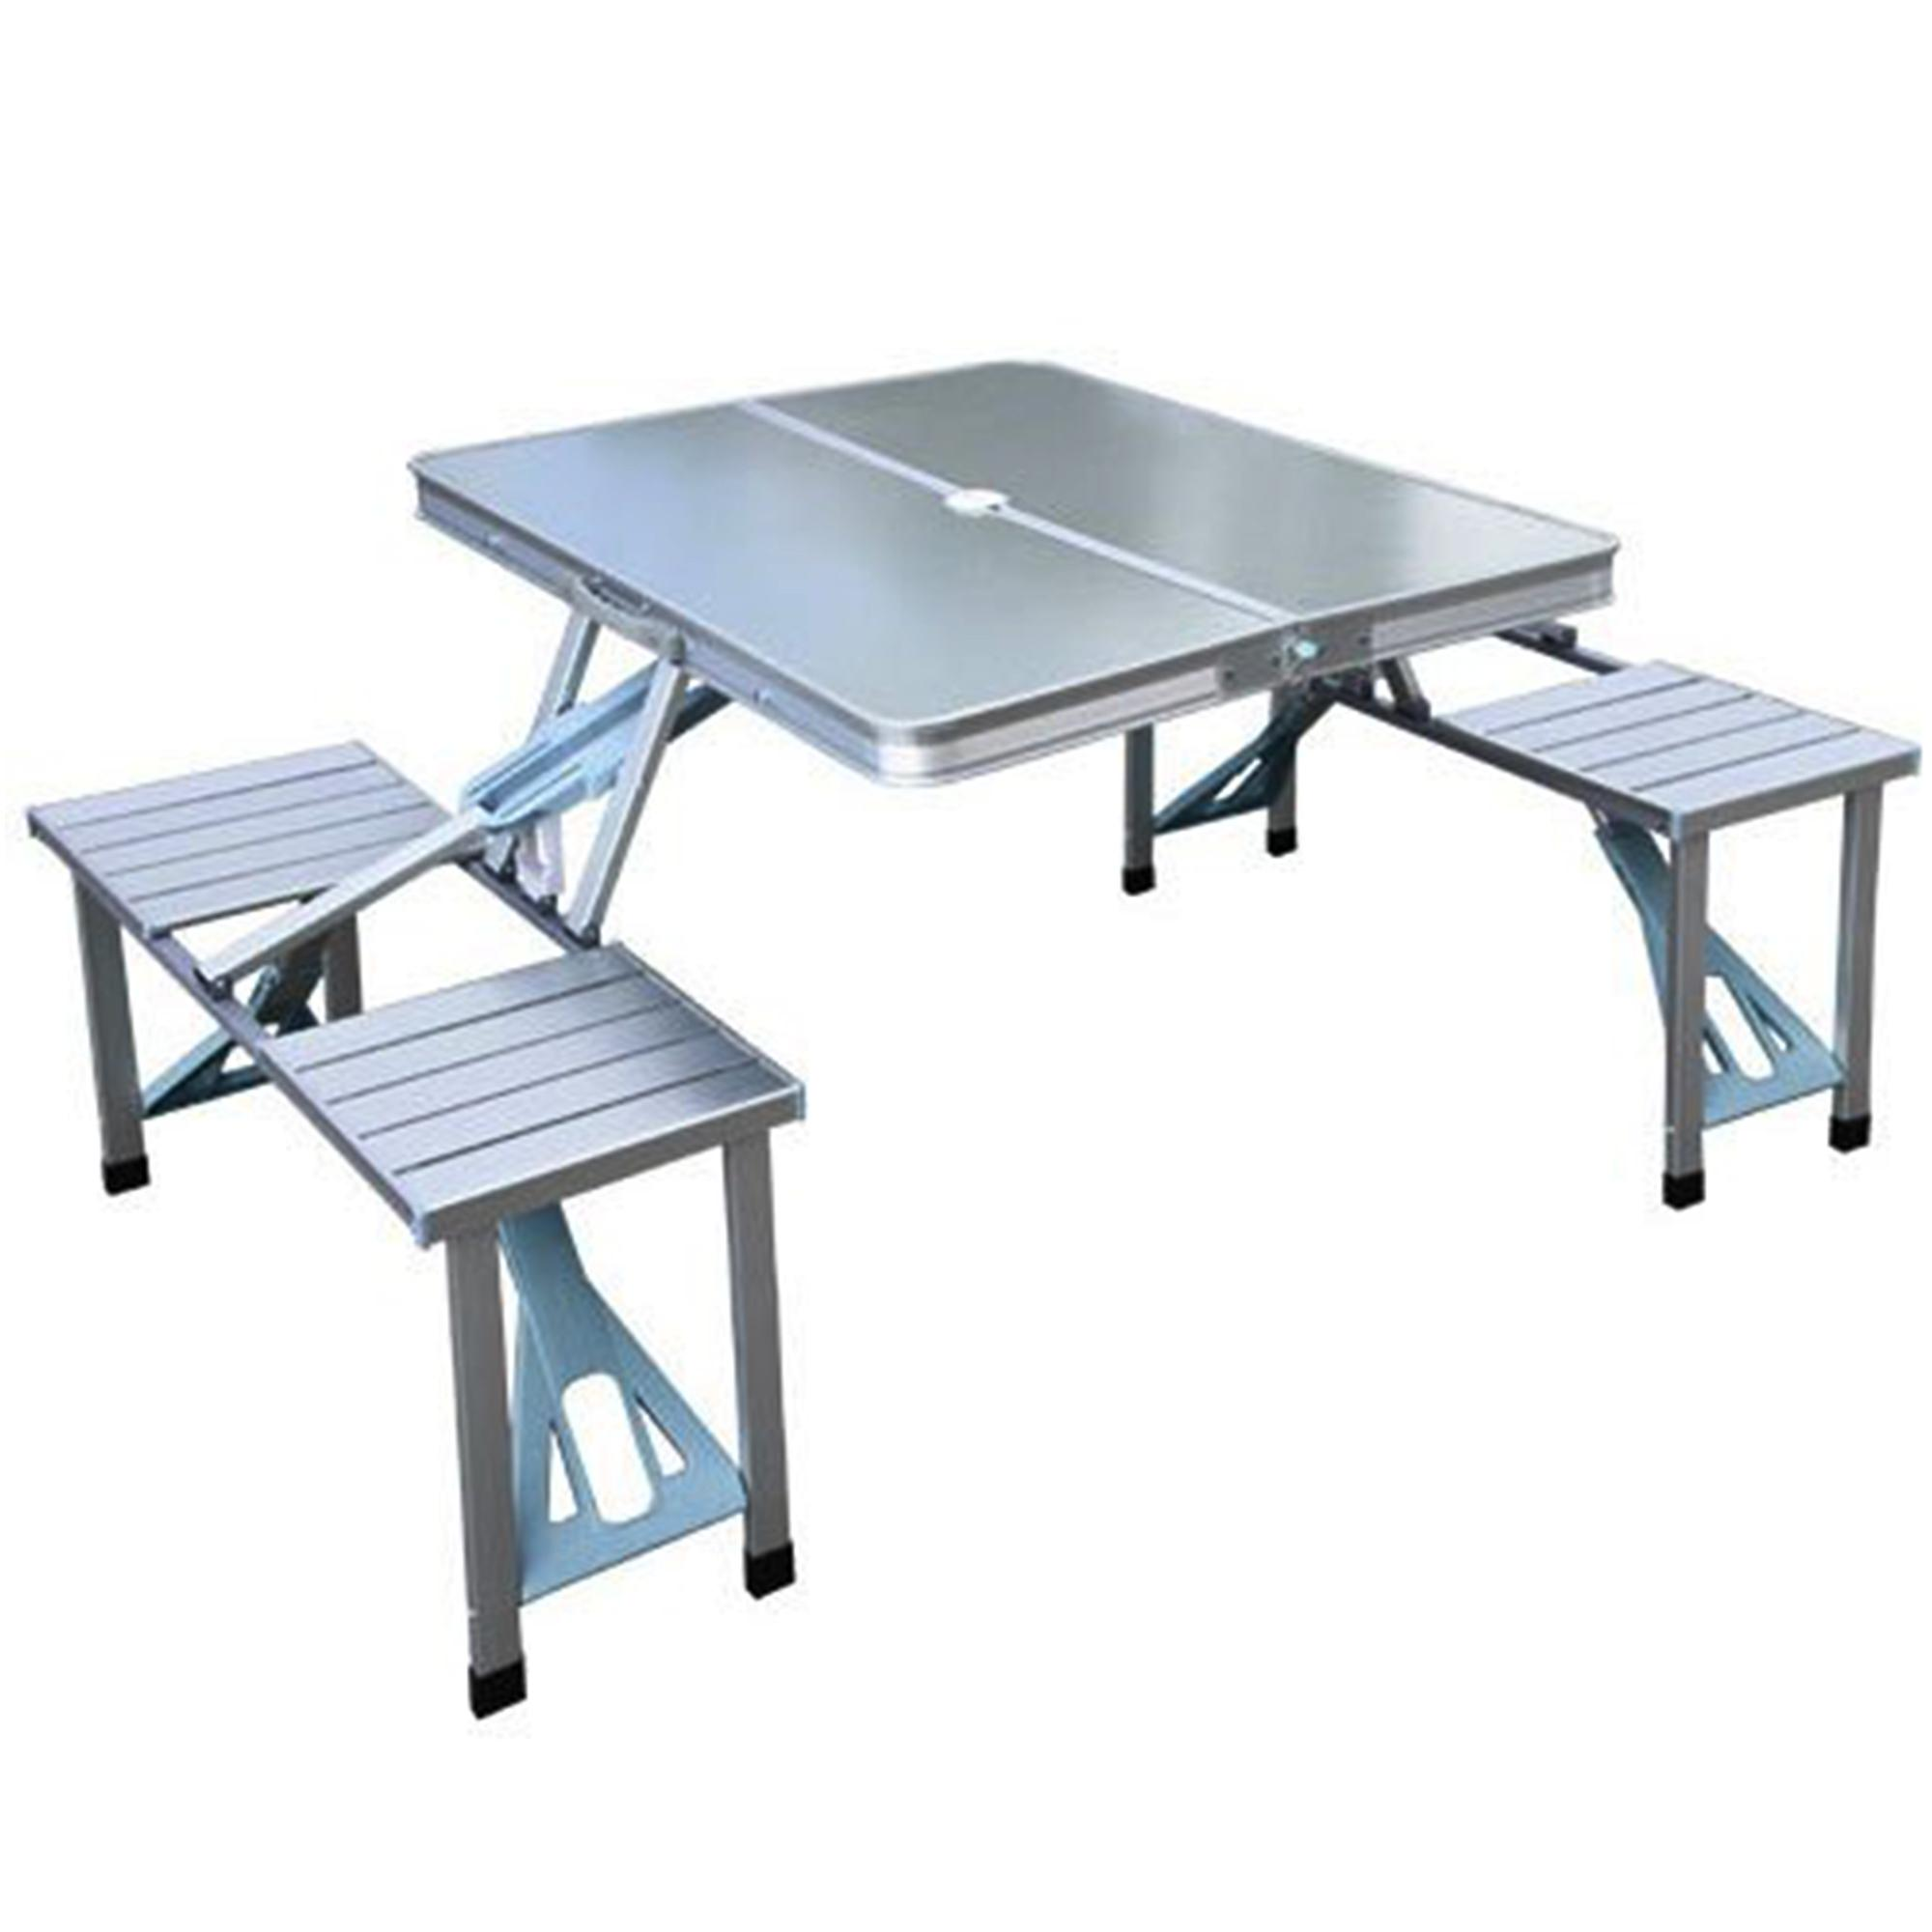 Outdoor Aluminum Portable Folding Camp Suitcase Foldable Picnic Table